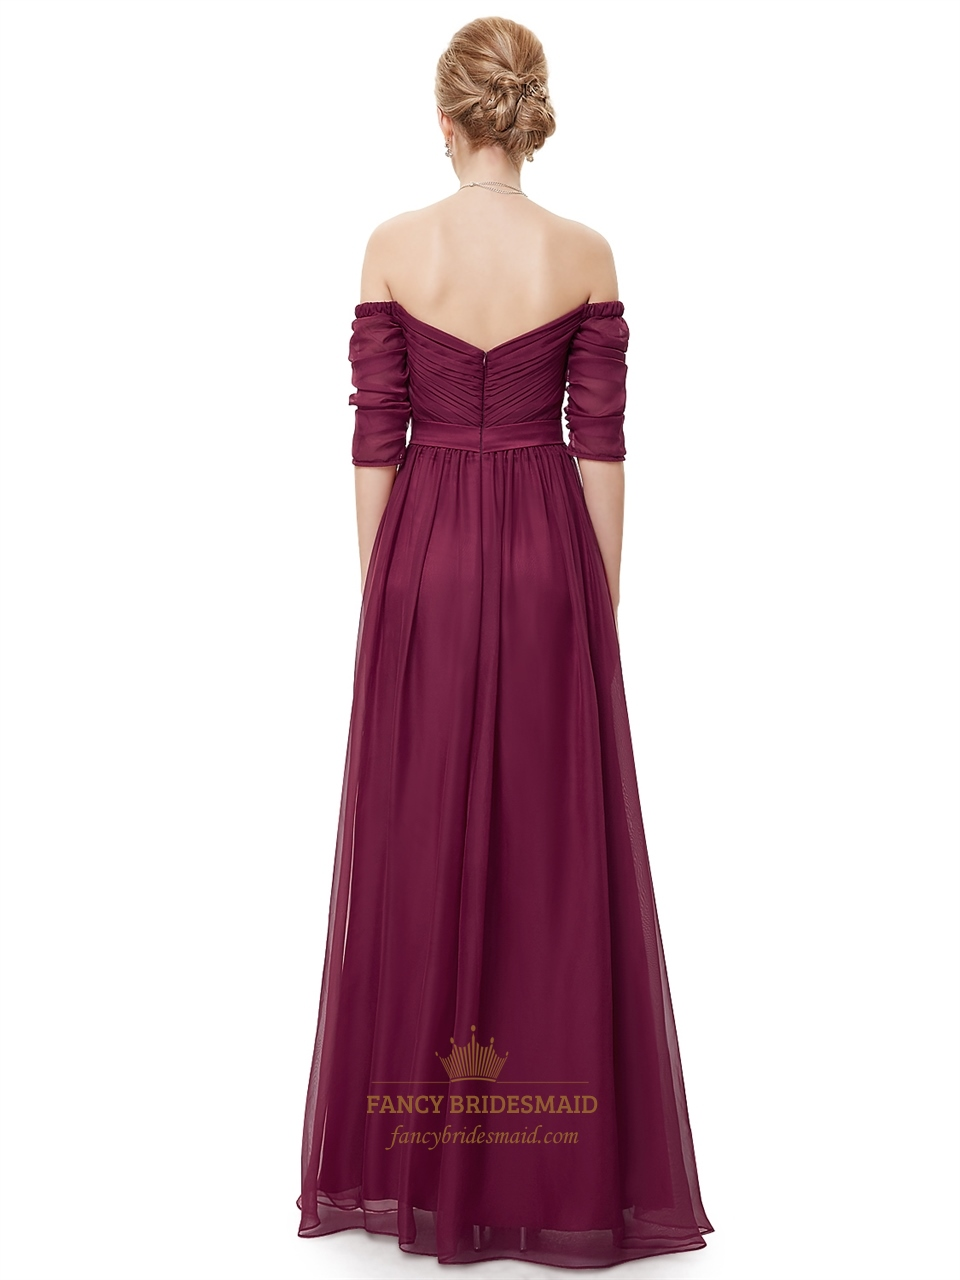 Burgundy Off The Shoulder Chiffon Ruched Prom Dress With Half Sleeves | Fancy Bridesmaid Dresses